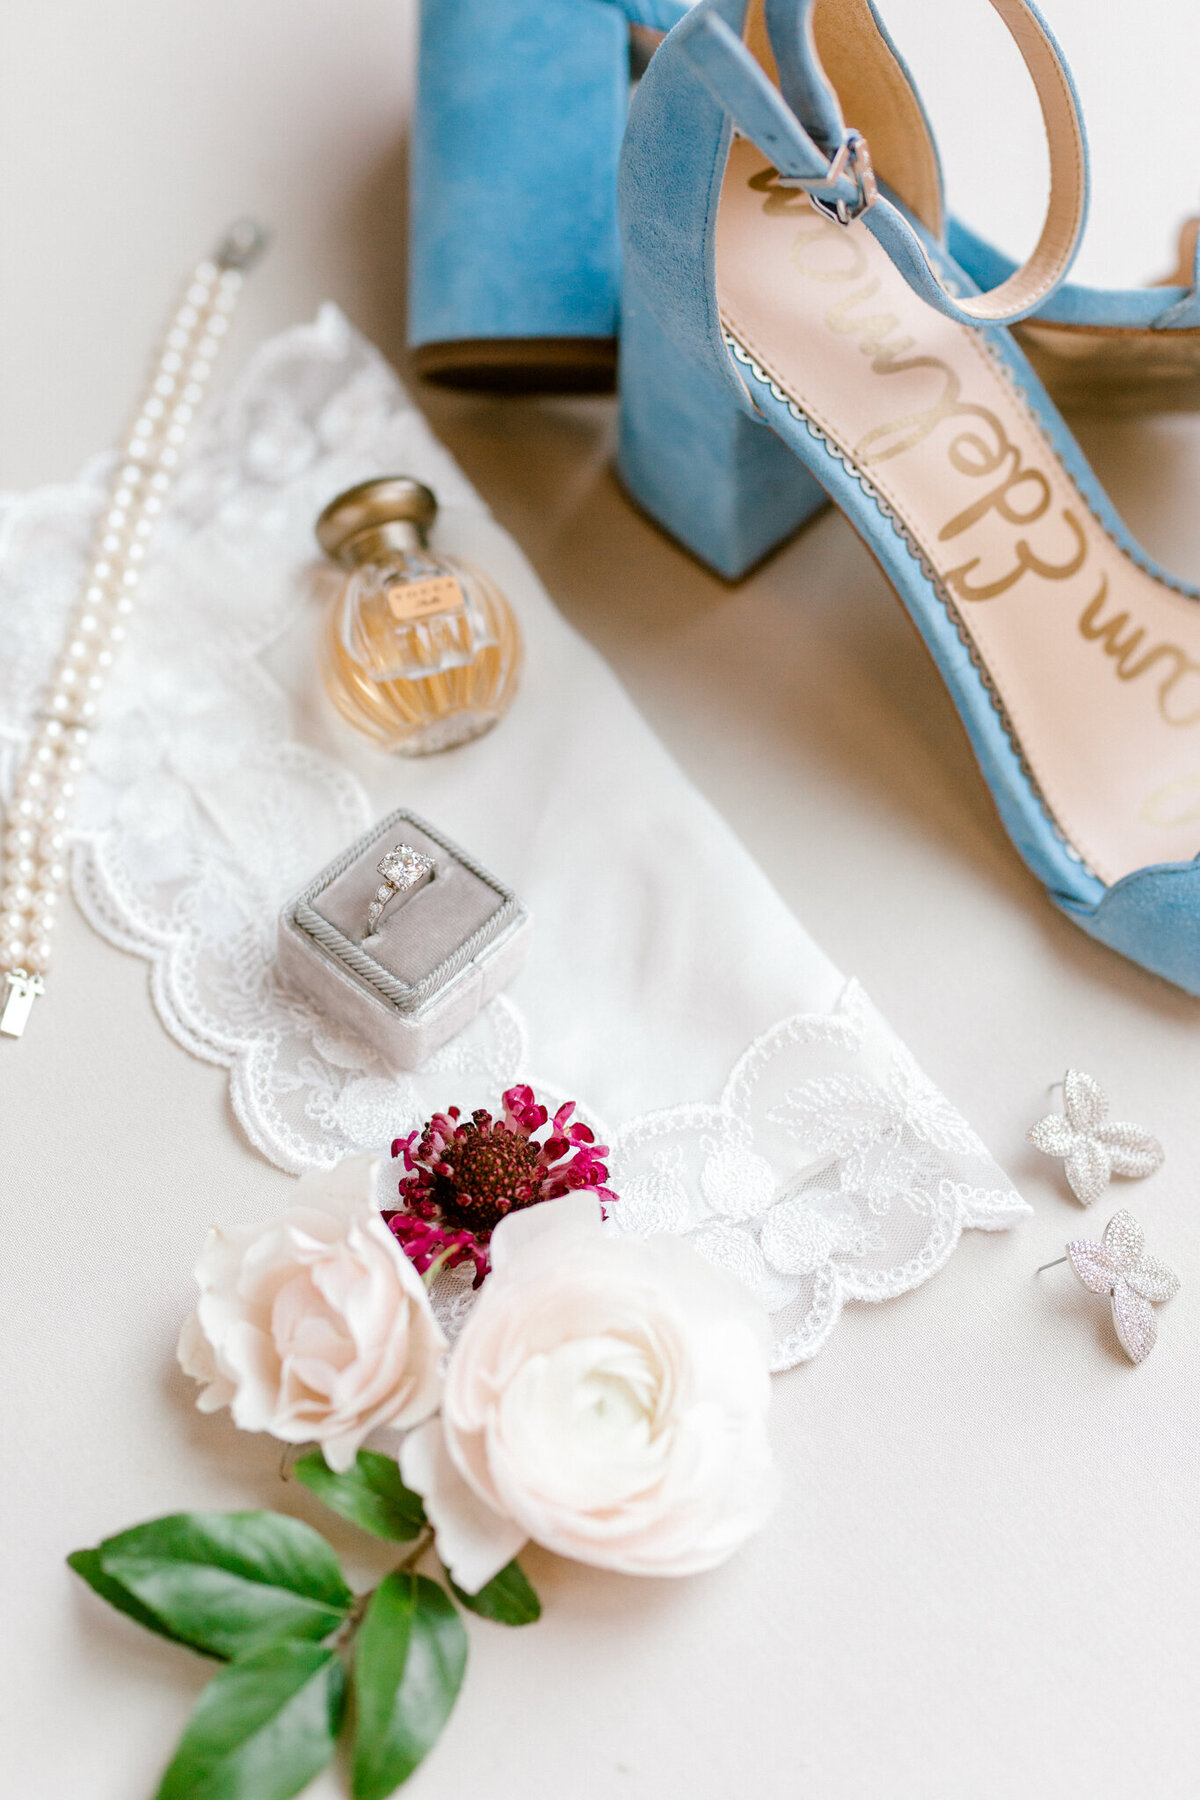 Kaylee & Michael's Wedding at Watermark Community Church | Dallas Wedding Photographer | Sami Kathryn Photography-13